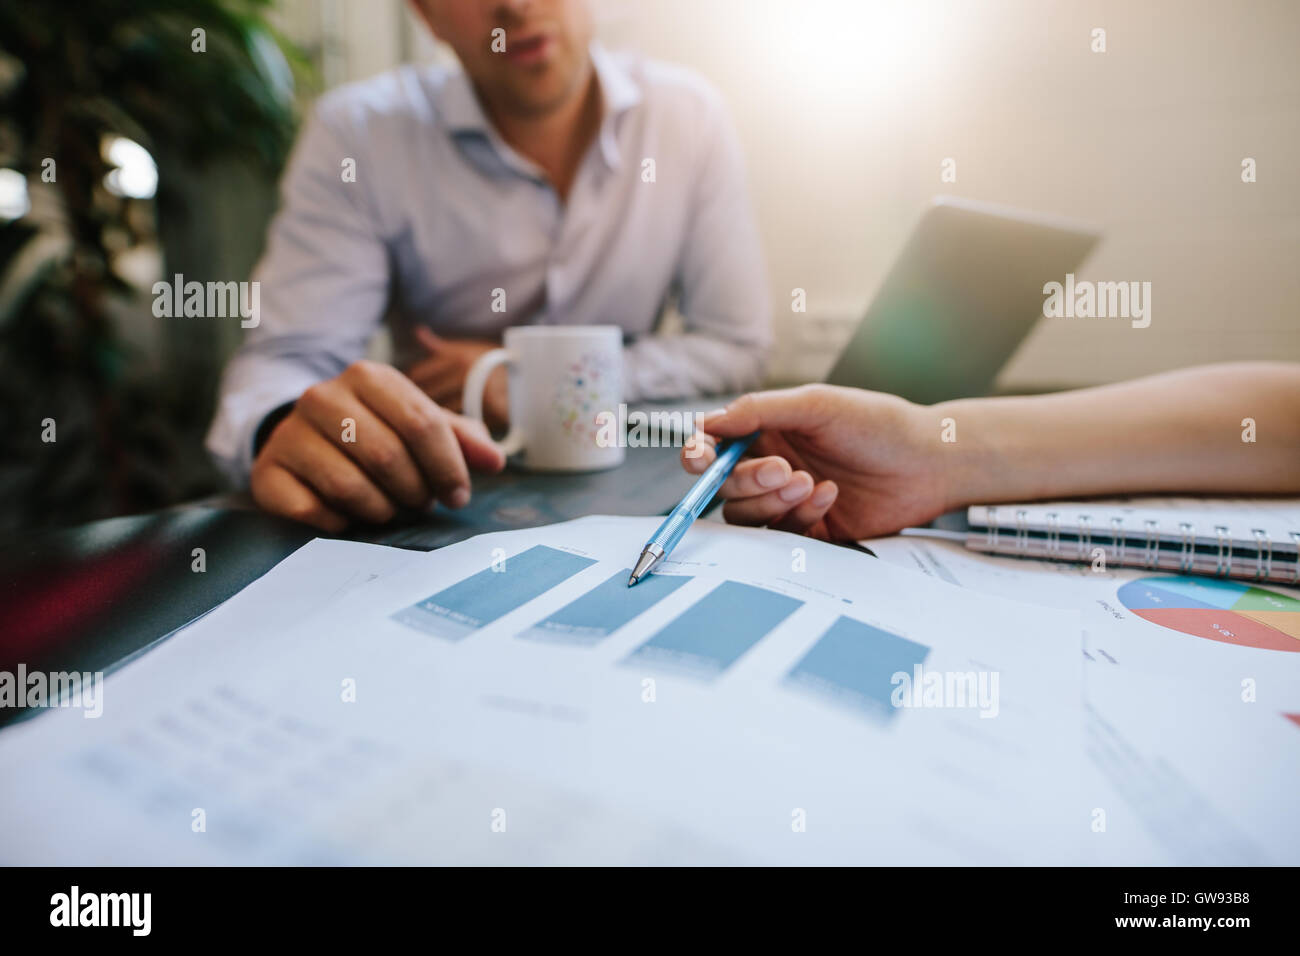 Close up shot of coworkers reviewing paperwork together in office. Businesspeople analyzing graphs during a meeting. Stock Photo